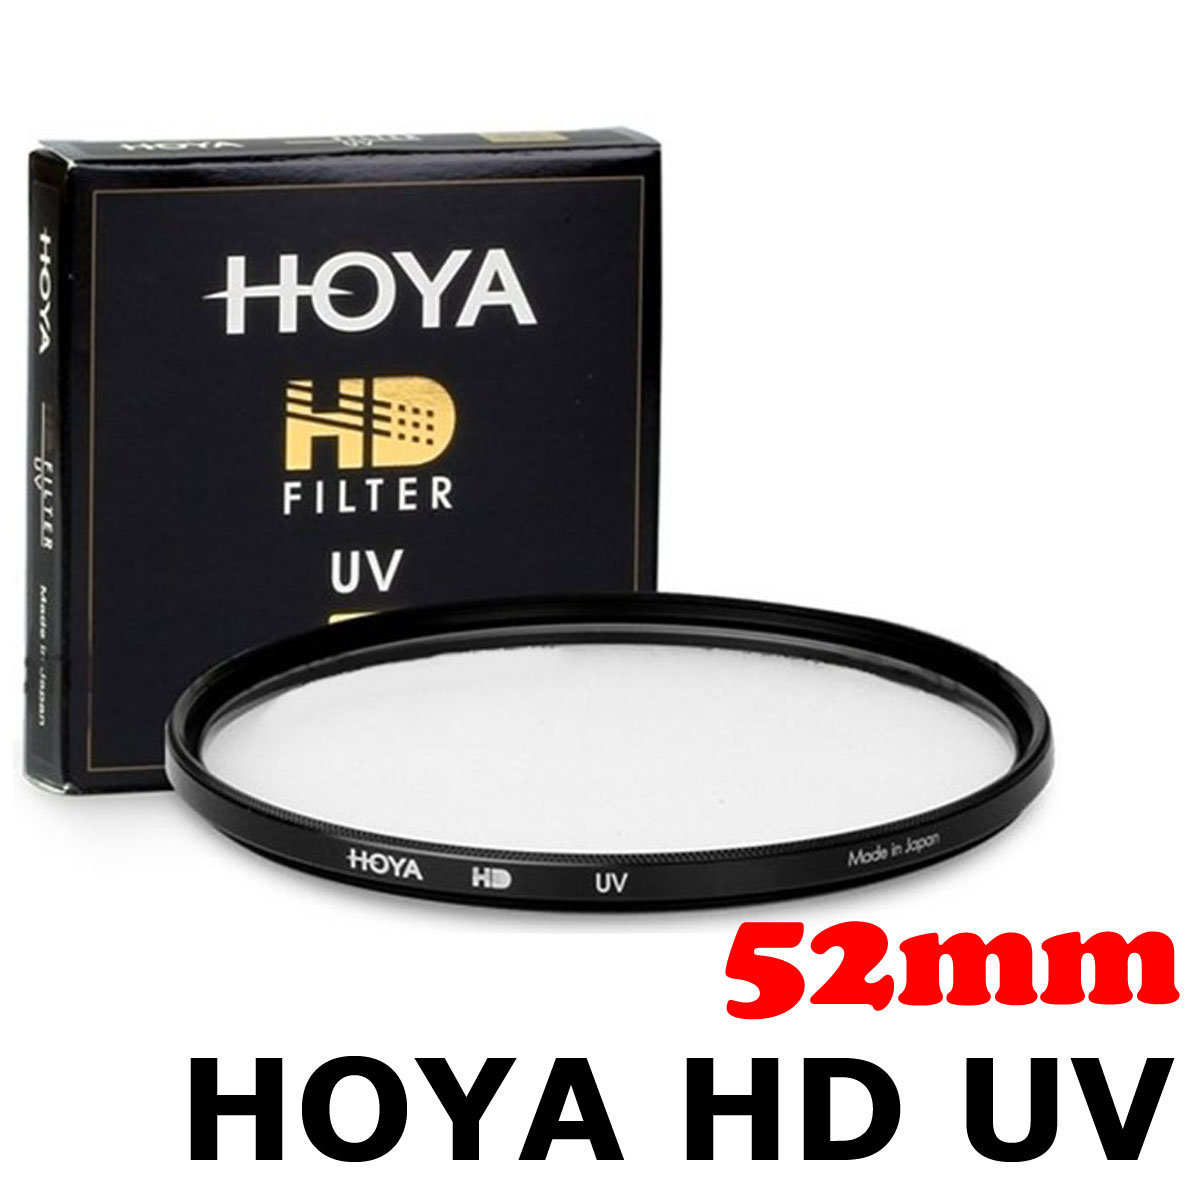 HD UV 52mm Slim Filter